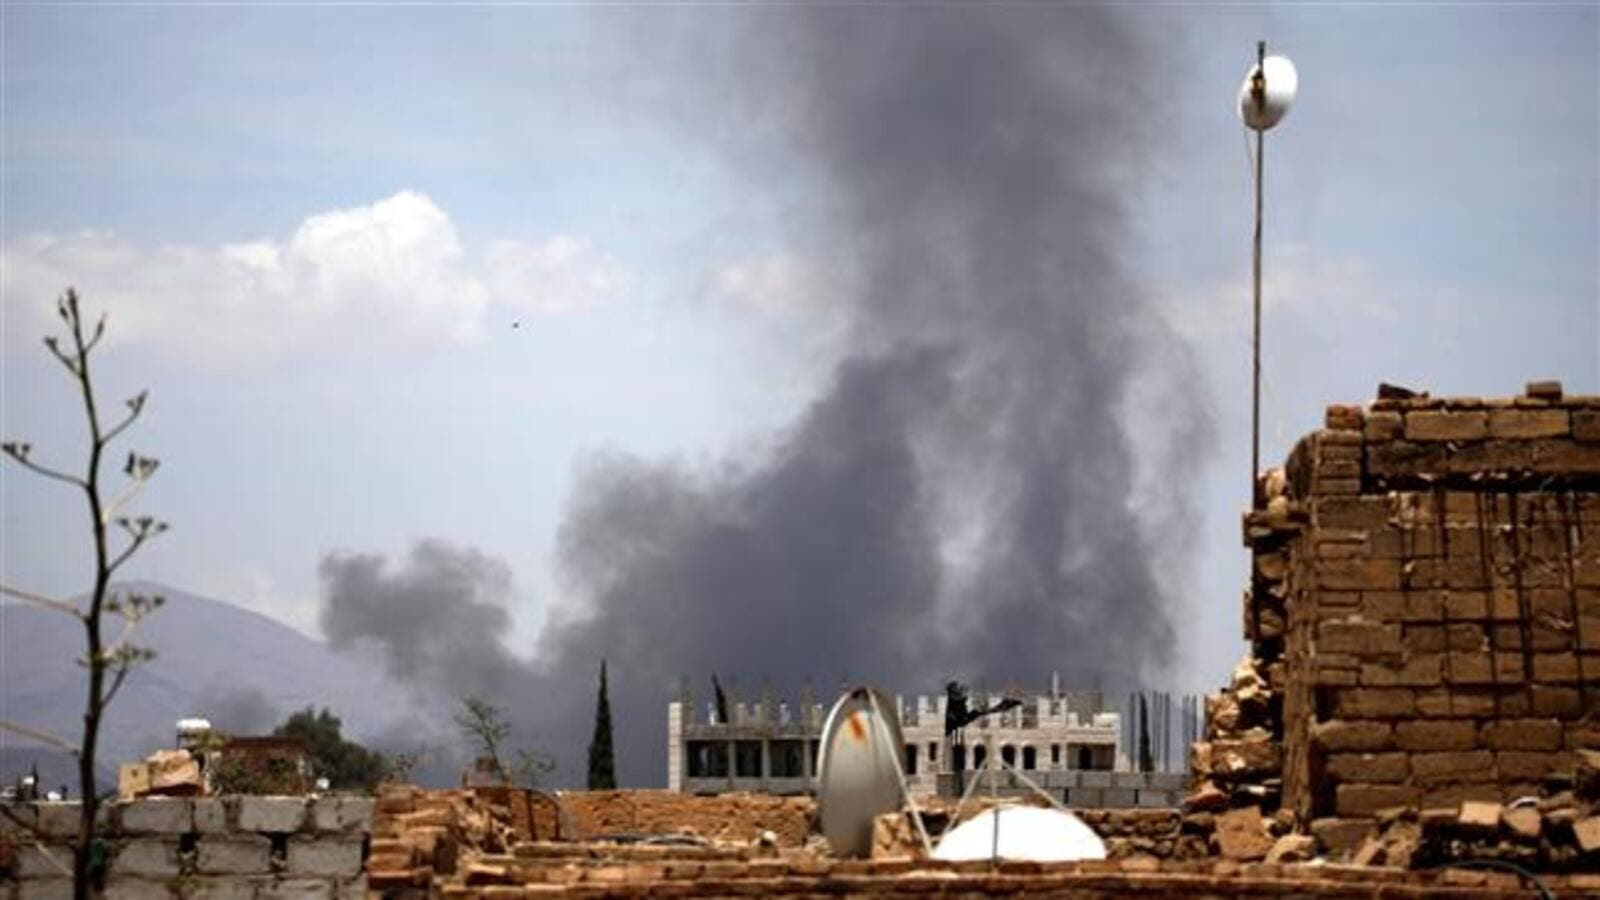 Smoke rising following Saudi airstrike  targeting the al-Dailami Airbase in Yemeni capital Sana'a. (AFP/ File Photo)